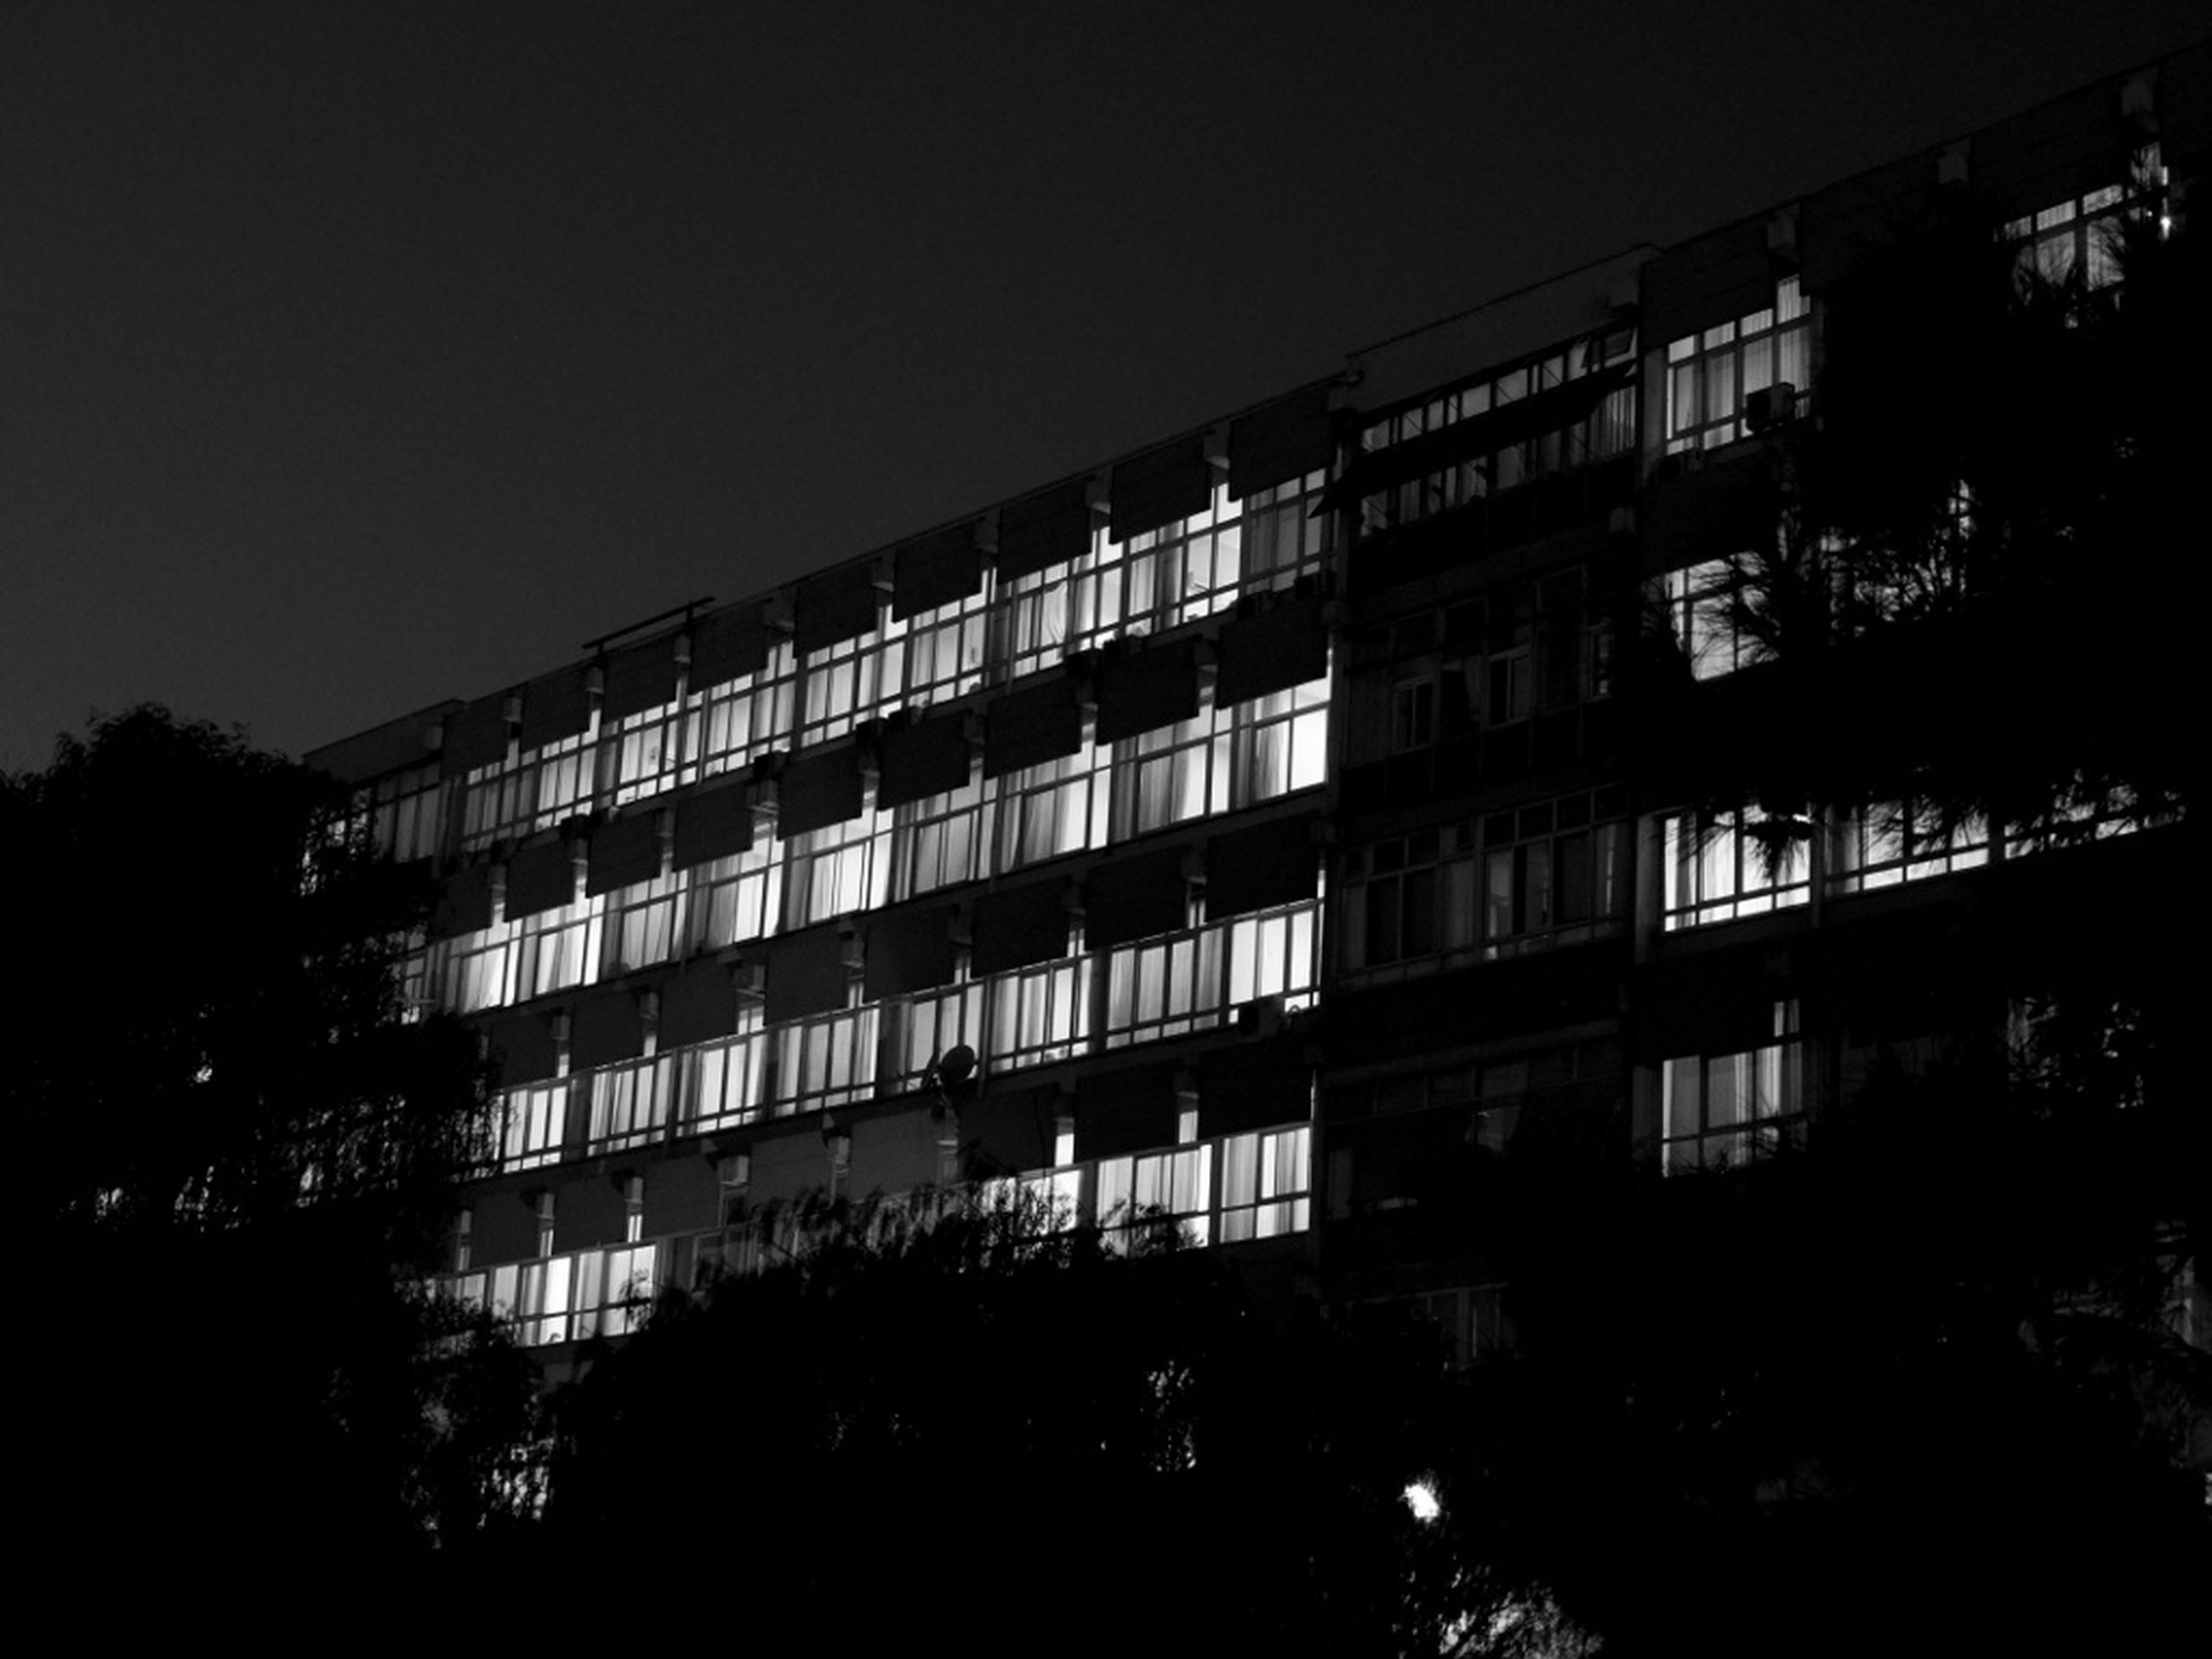 architecture, built structure, building exterior, low angle view, city, building, clear sky, residential building, window, night, residential structure, illuminated, tree, sky, outdoors, no people, exterior, city life, apartment, balcony